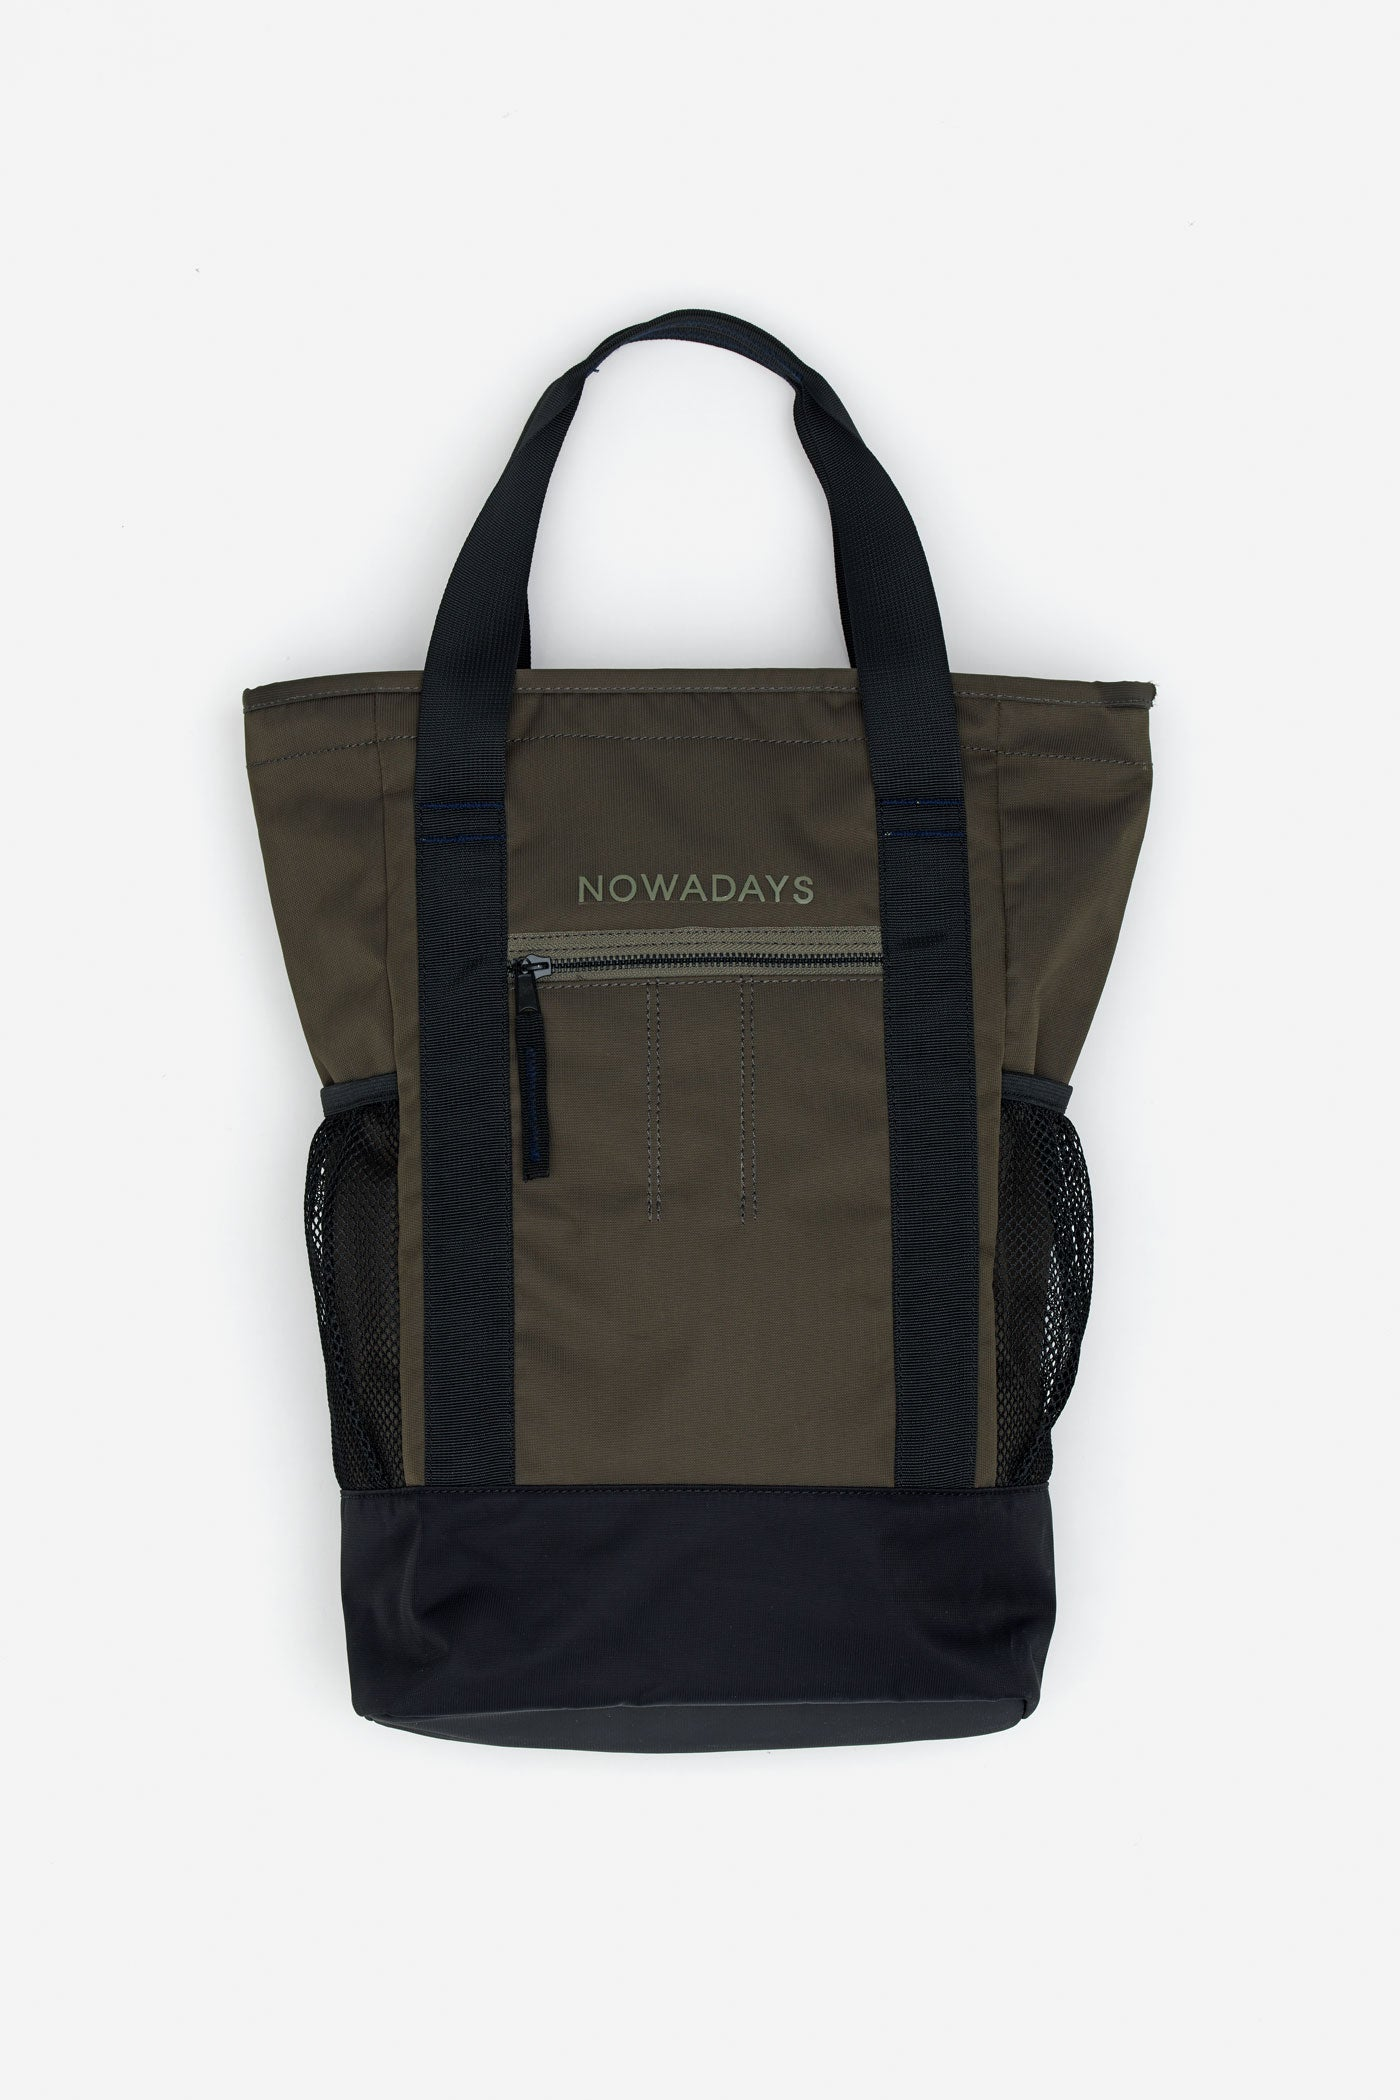 Tote Bag wood